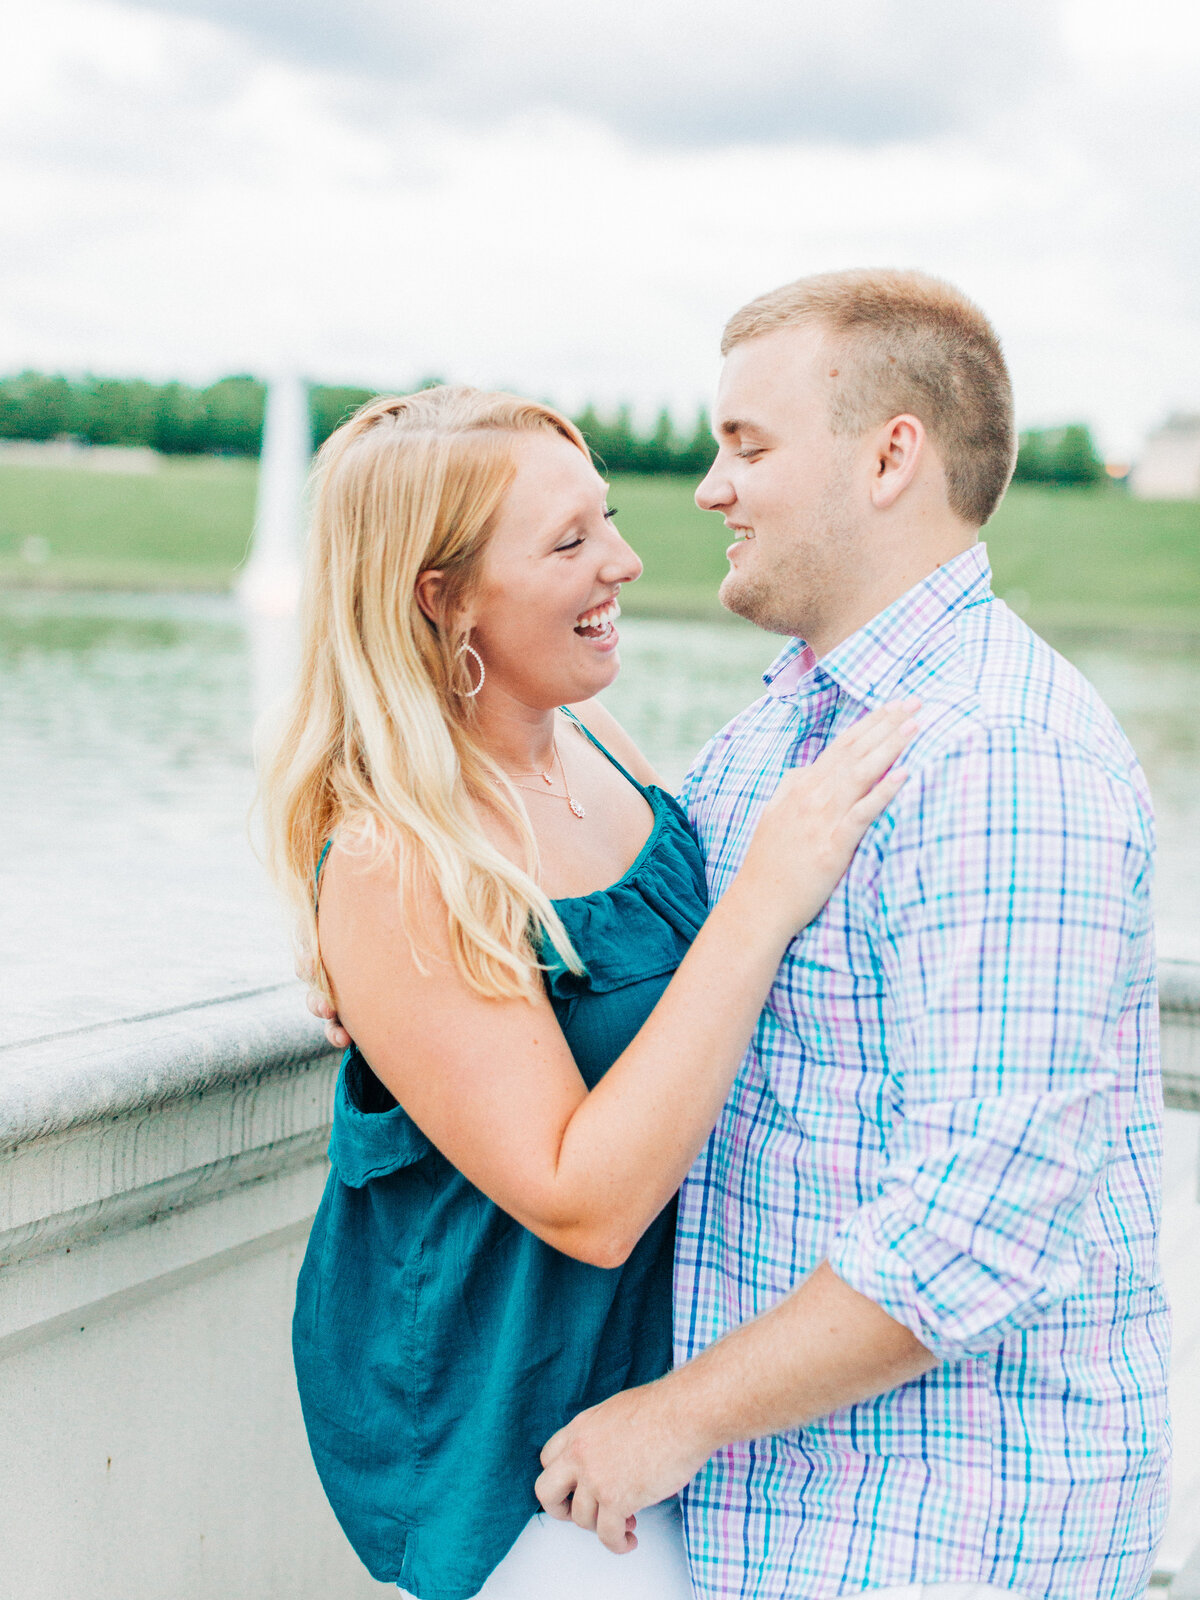 Dorothy_Louise_Photography_Meghan_Patrick_Forest_Park_Engagement-175